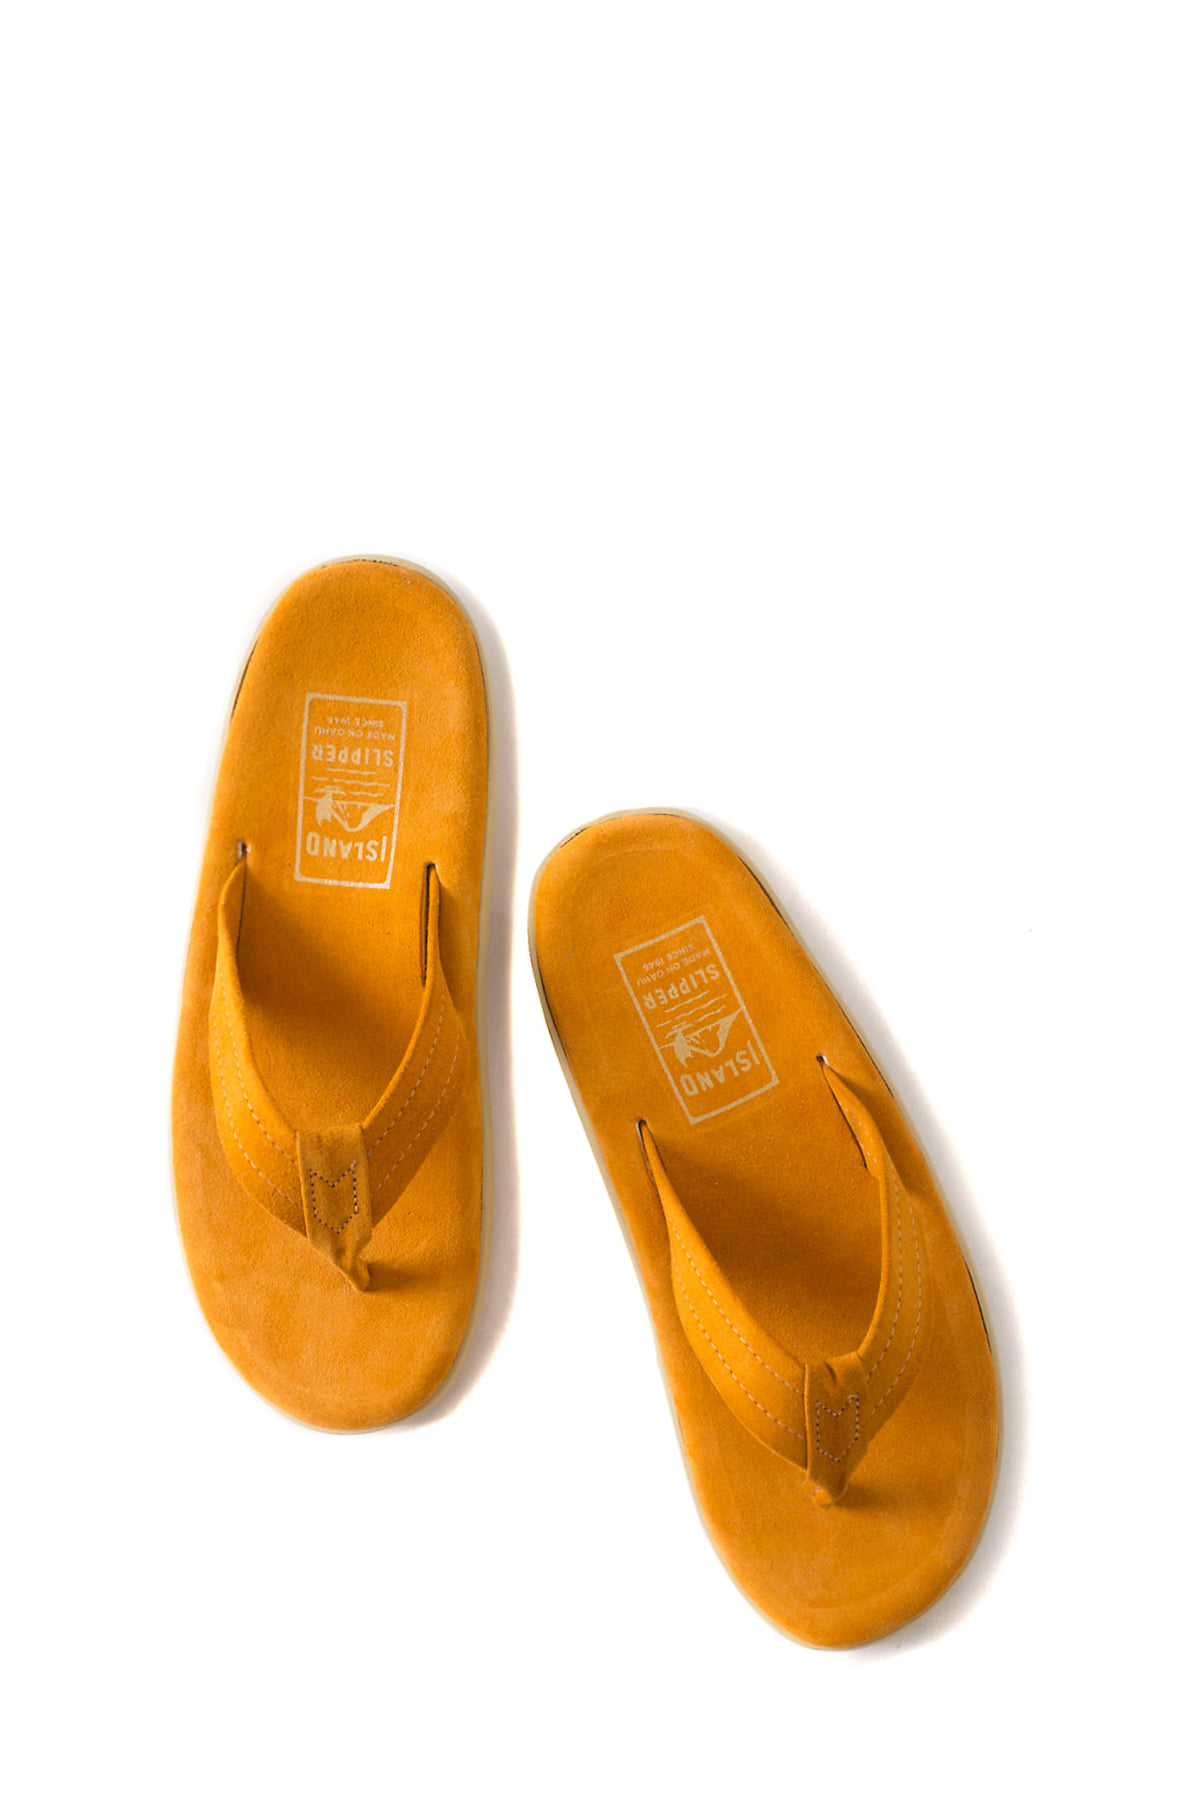 ISLAND SLIPPER : PT203 (Orange Suede)